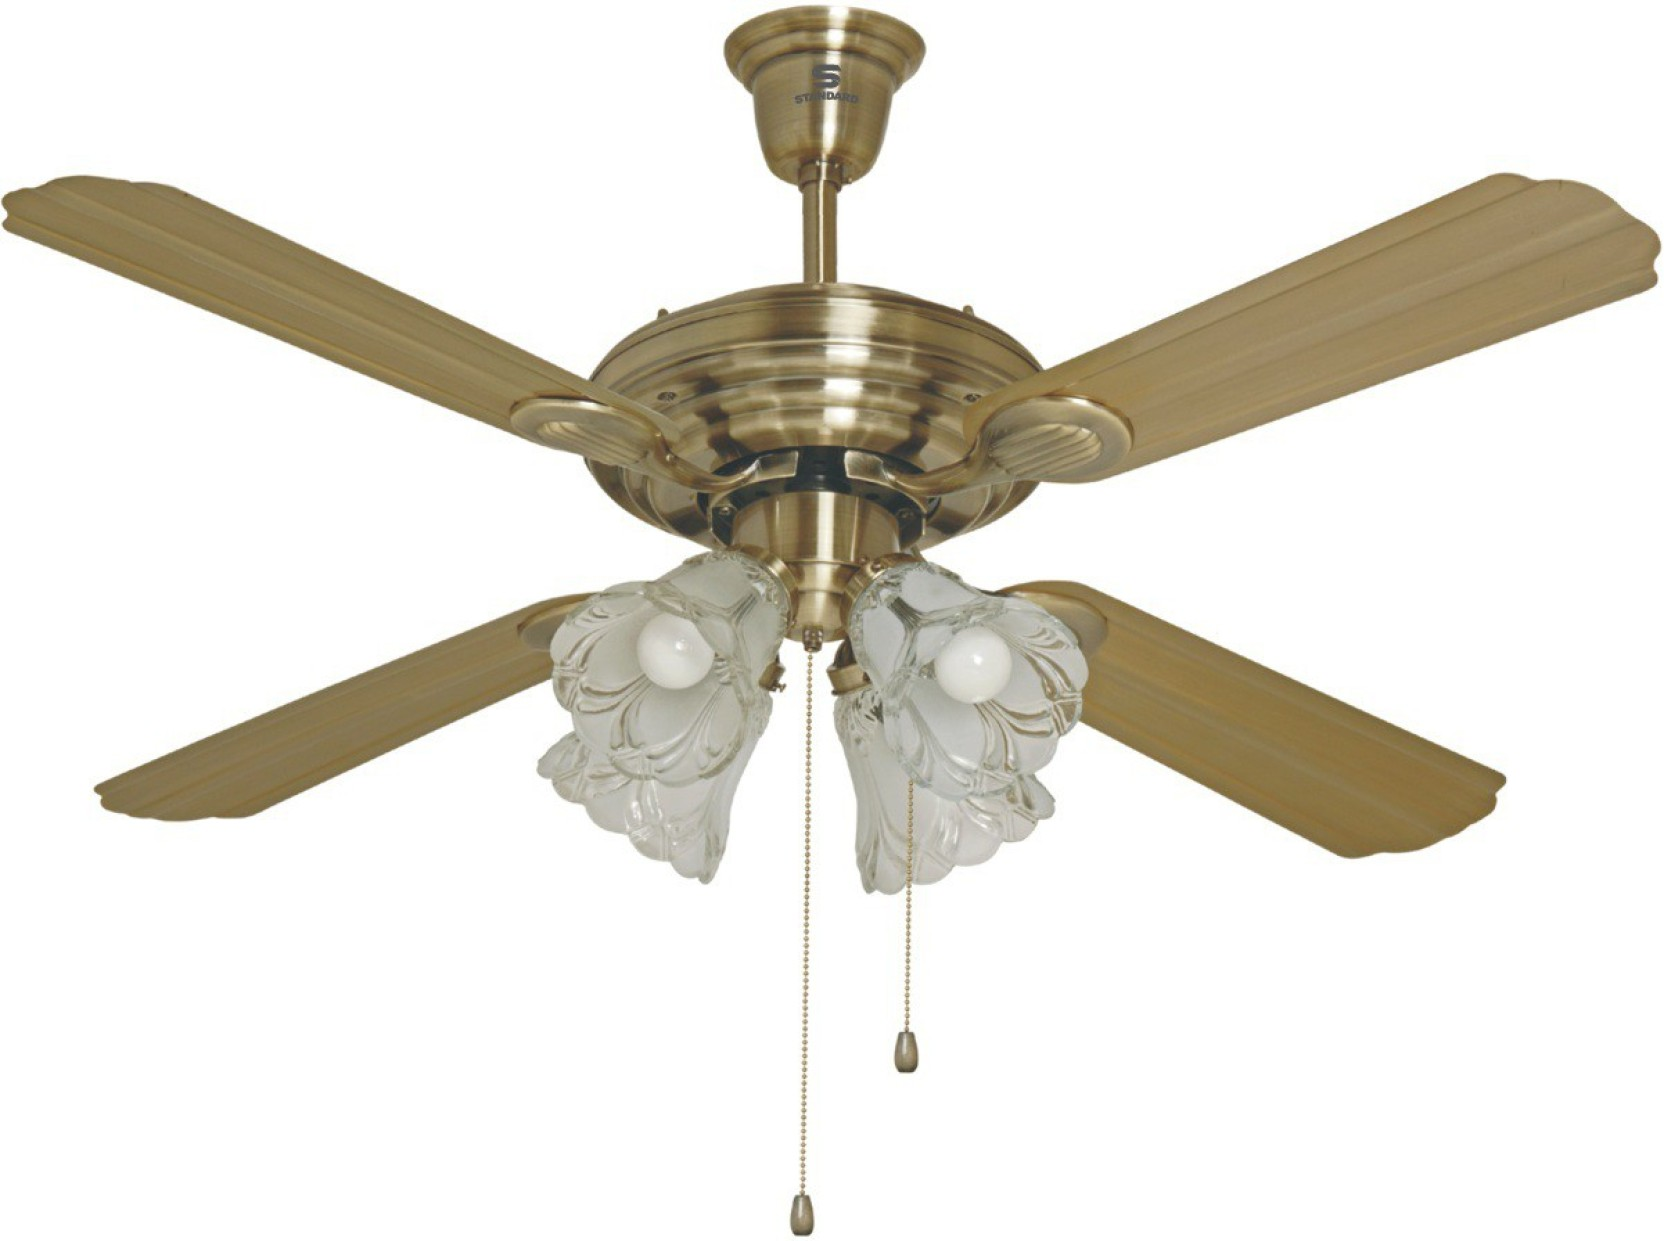 Havells Standard Evoke With Light 4 Blade Ceiling Fan Price In India Google On 3 Wires And Wiring A Without Home